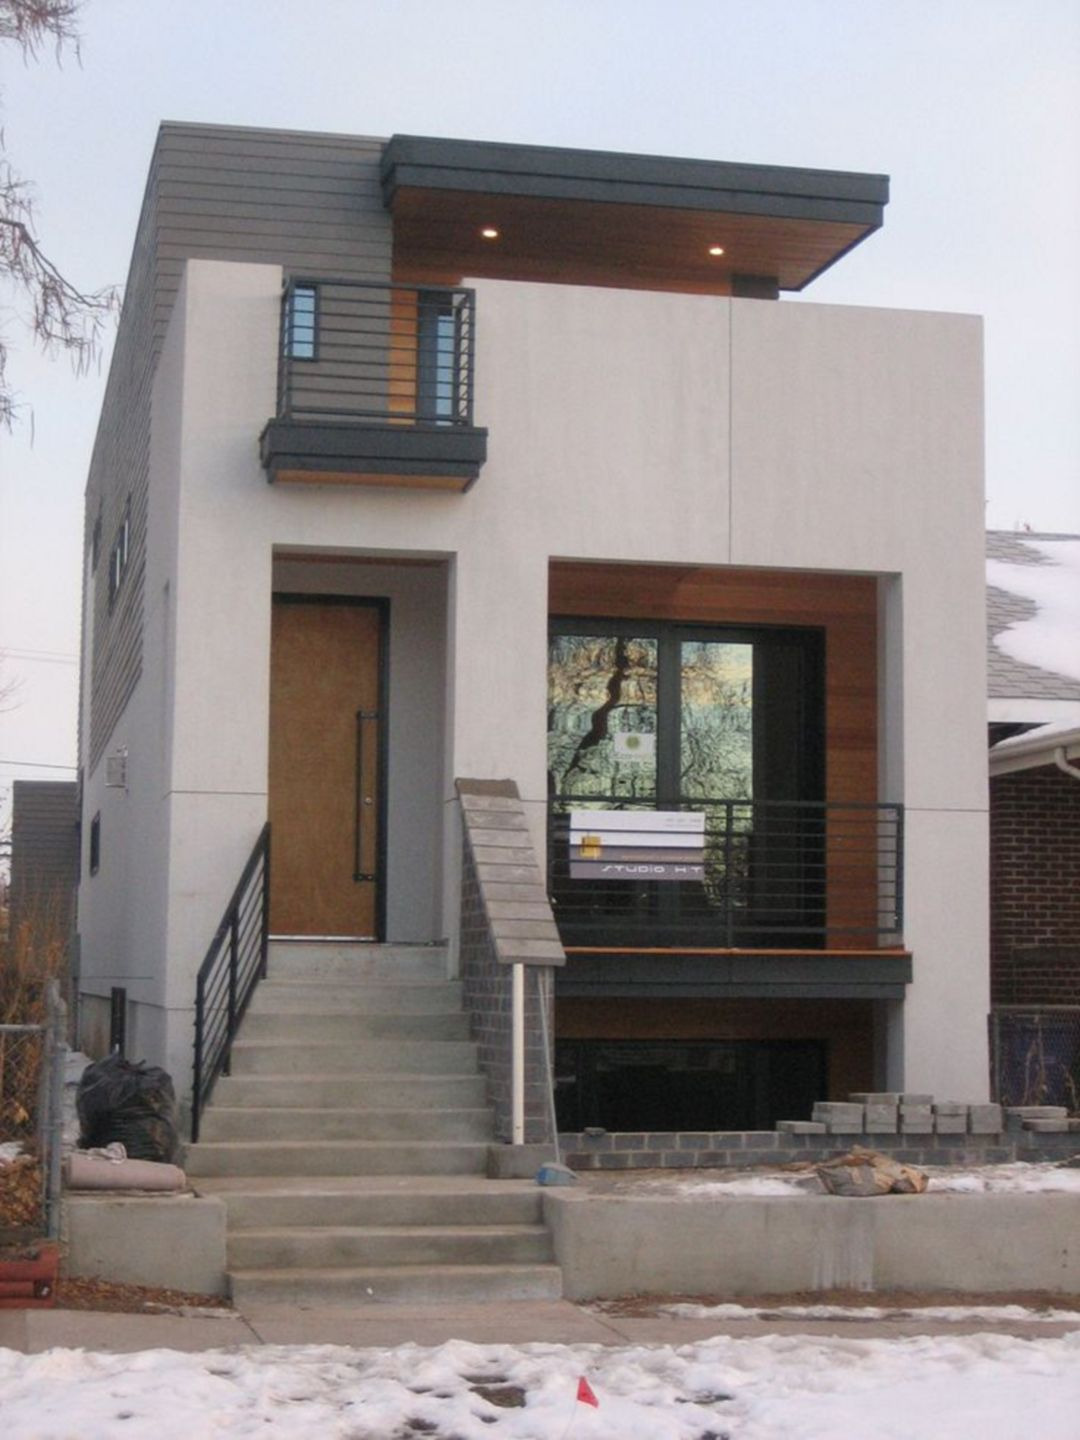 Small Basic House Plans Lovely 15 Simple Minimalist House Design Trends 2019 Rubric Core